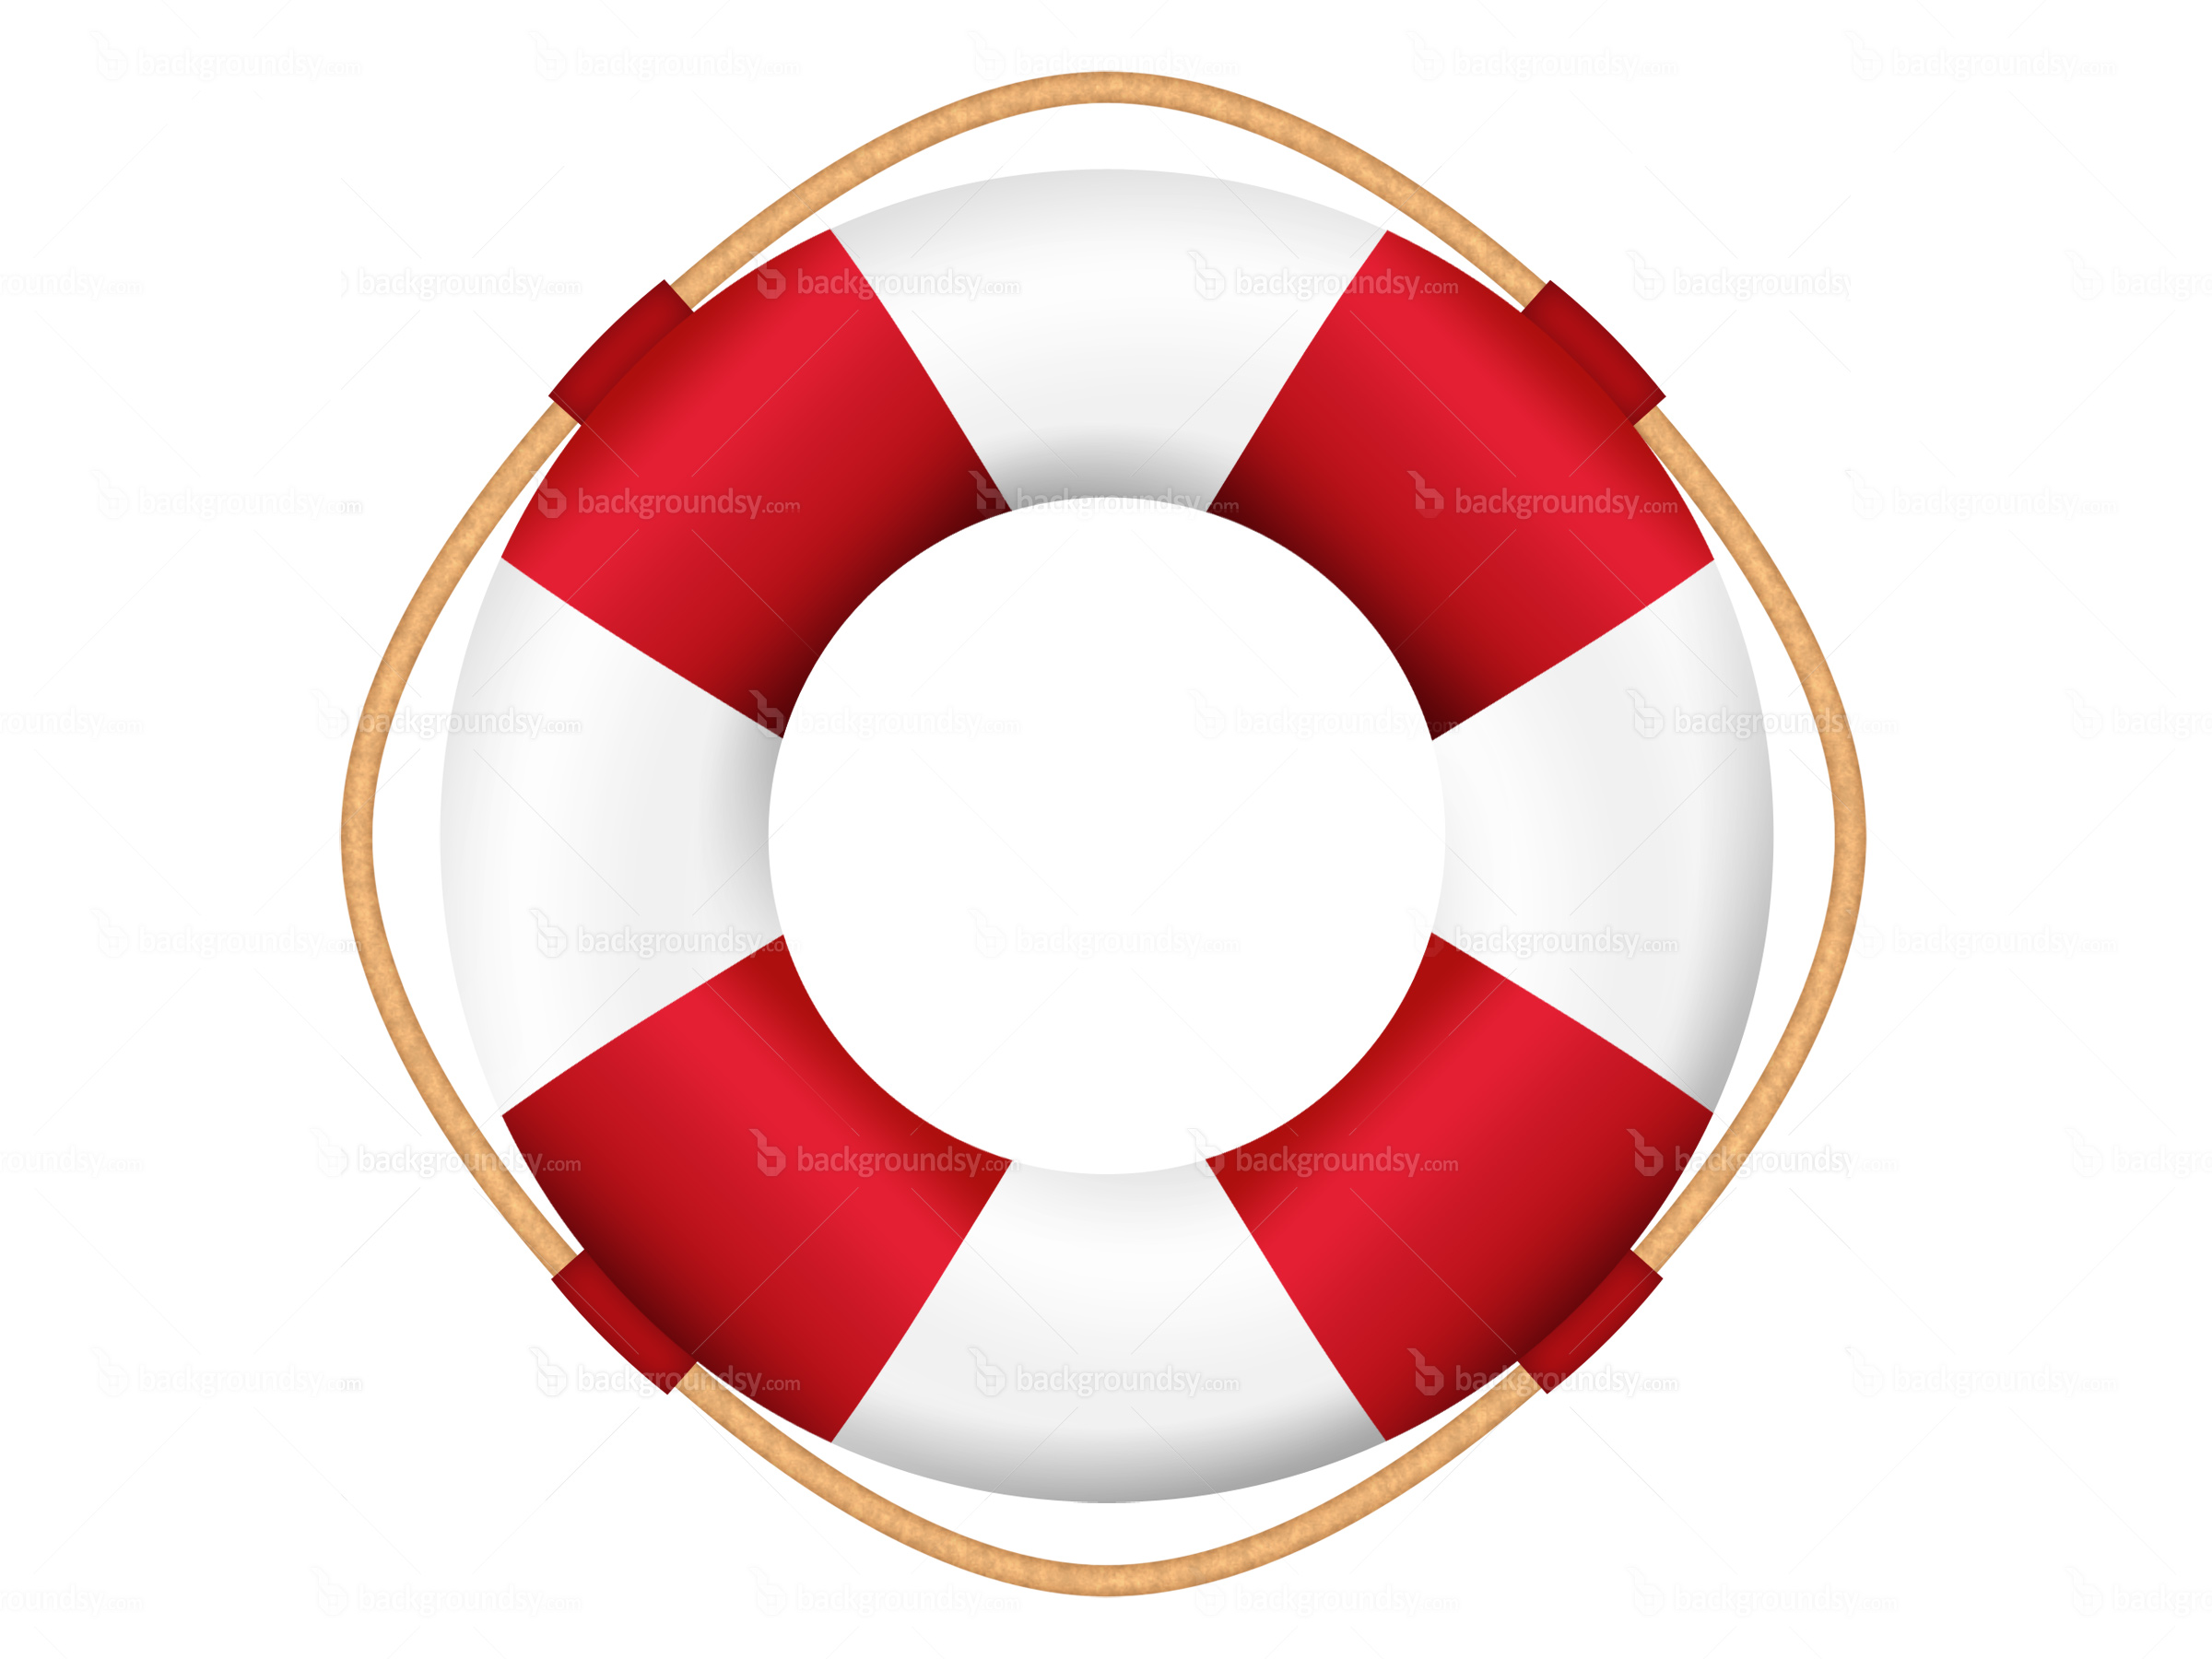 Floating clipart lifesaver Saver Life cliparts Clipart Lifesaver